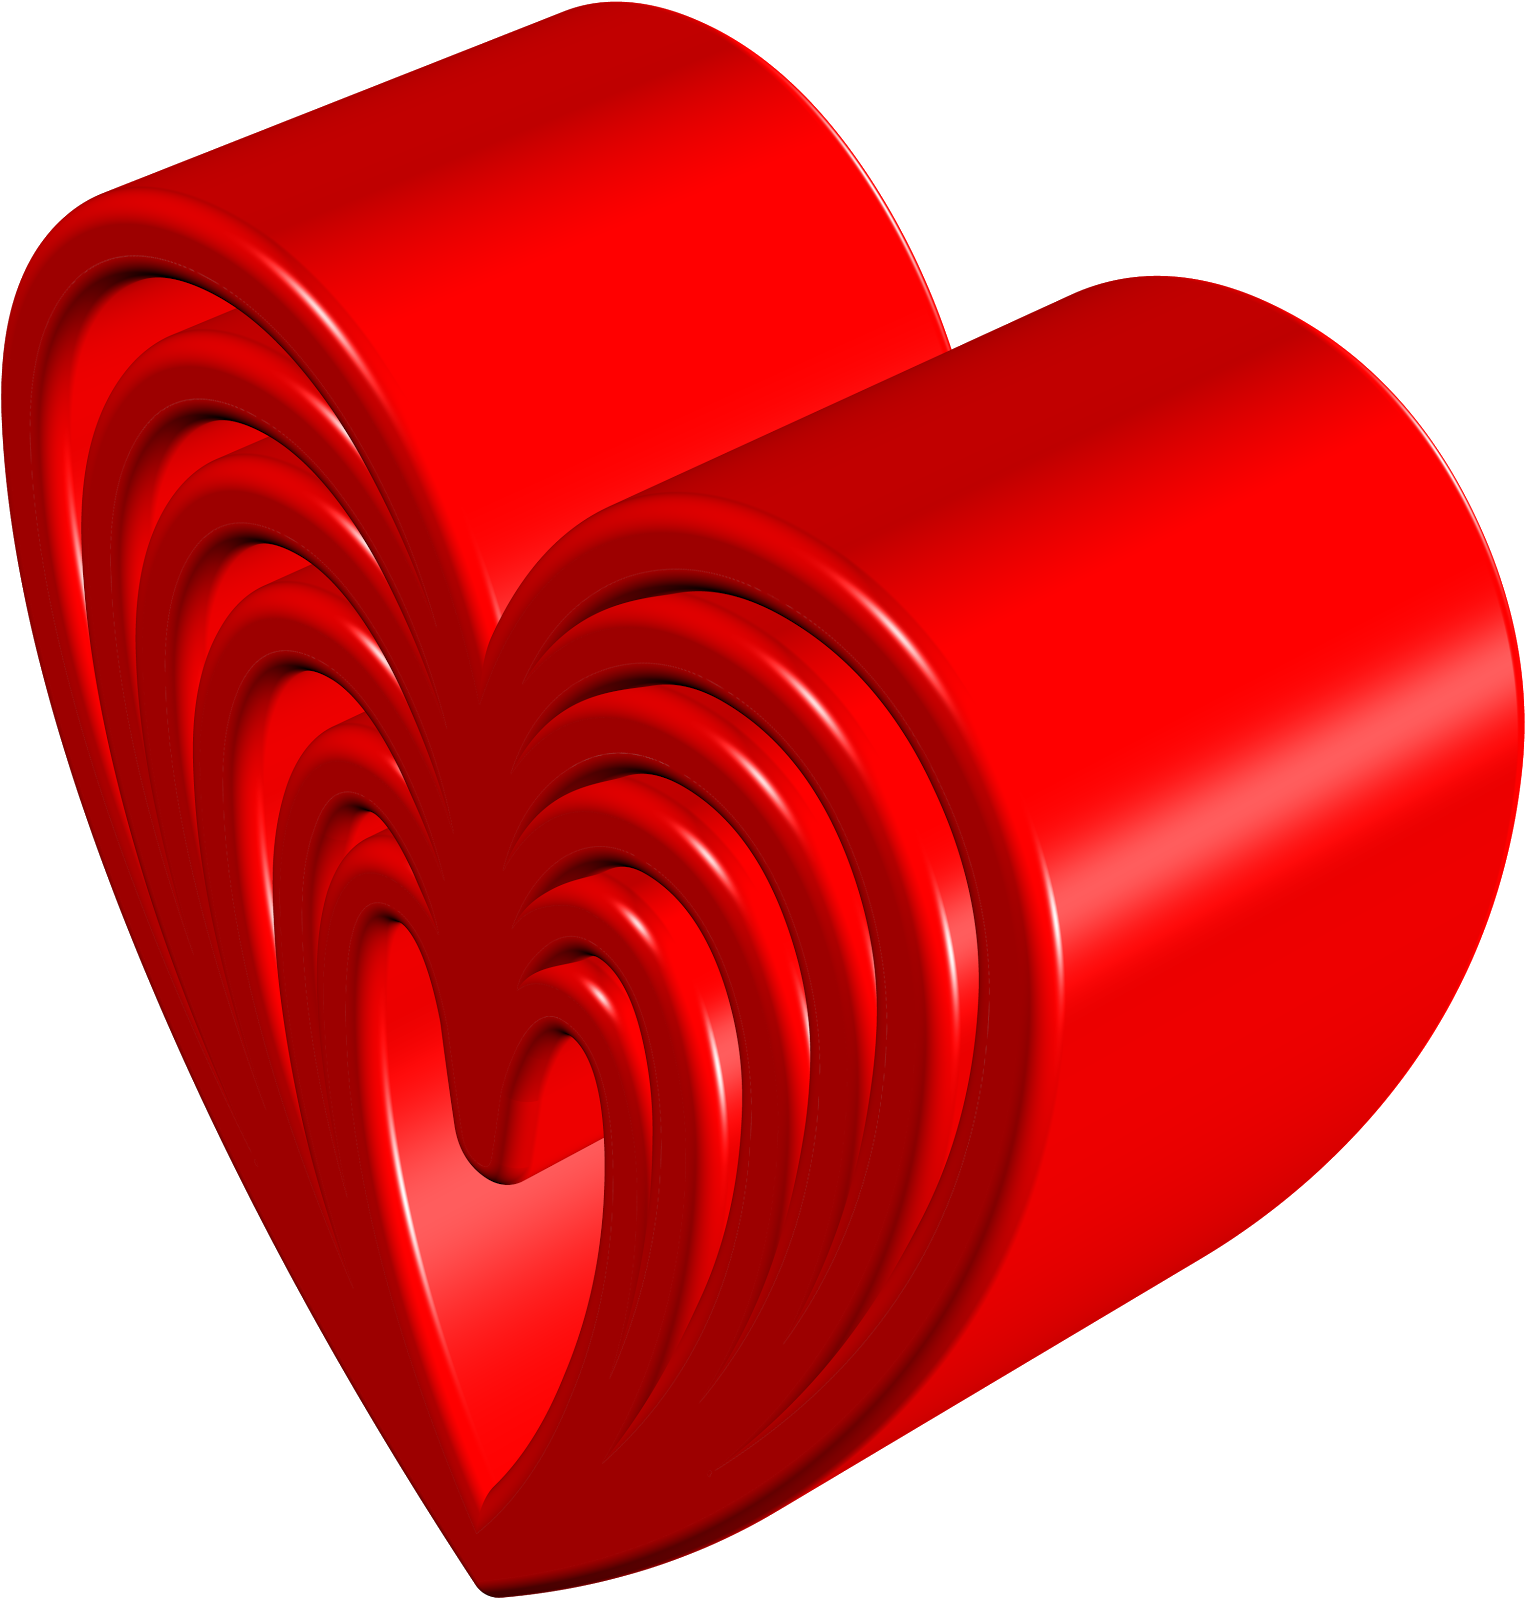 love 3d wallpapers heart red colour with messages - romantic urdu